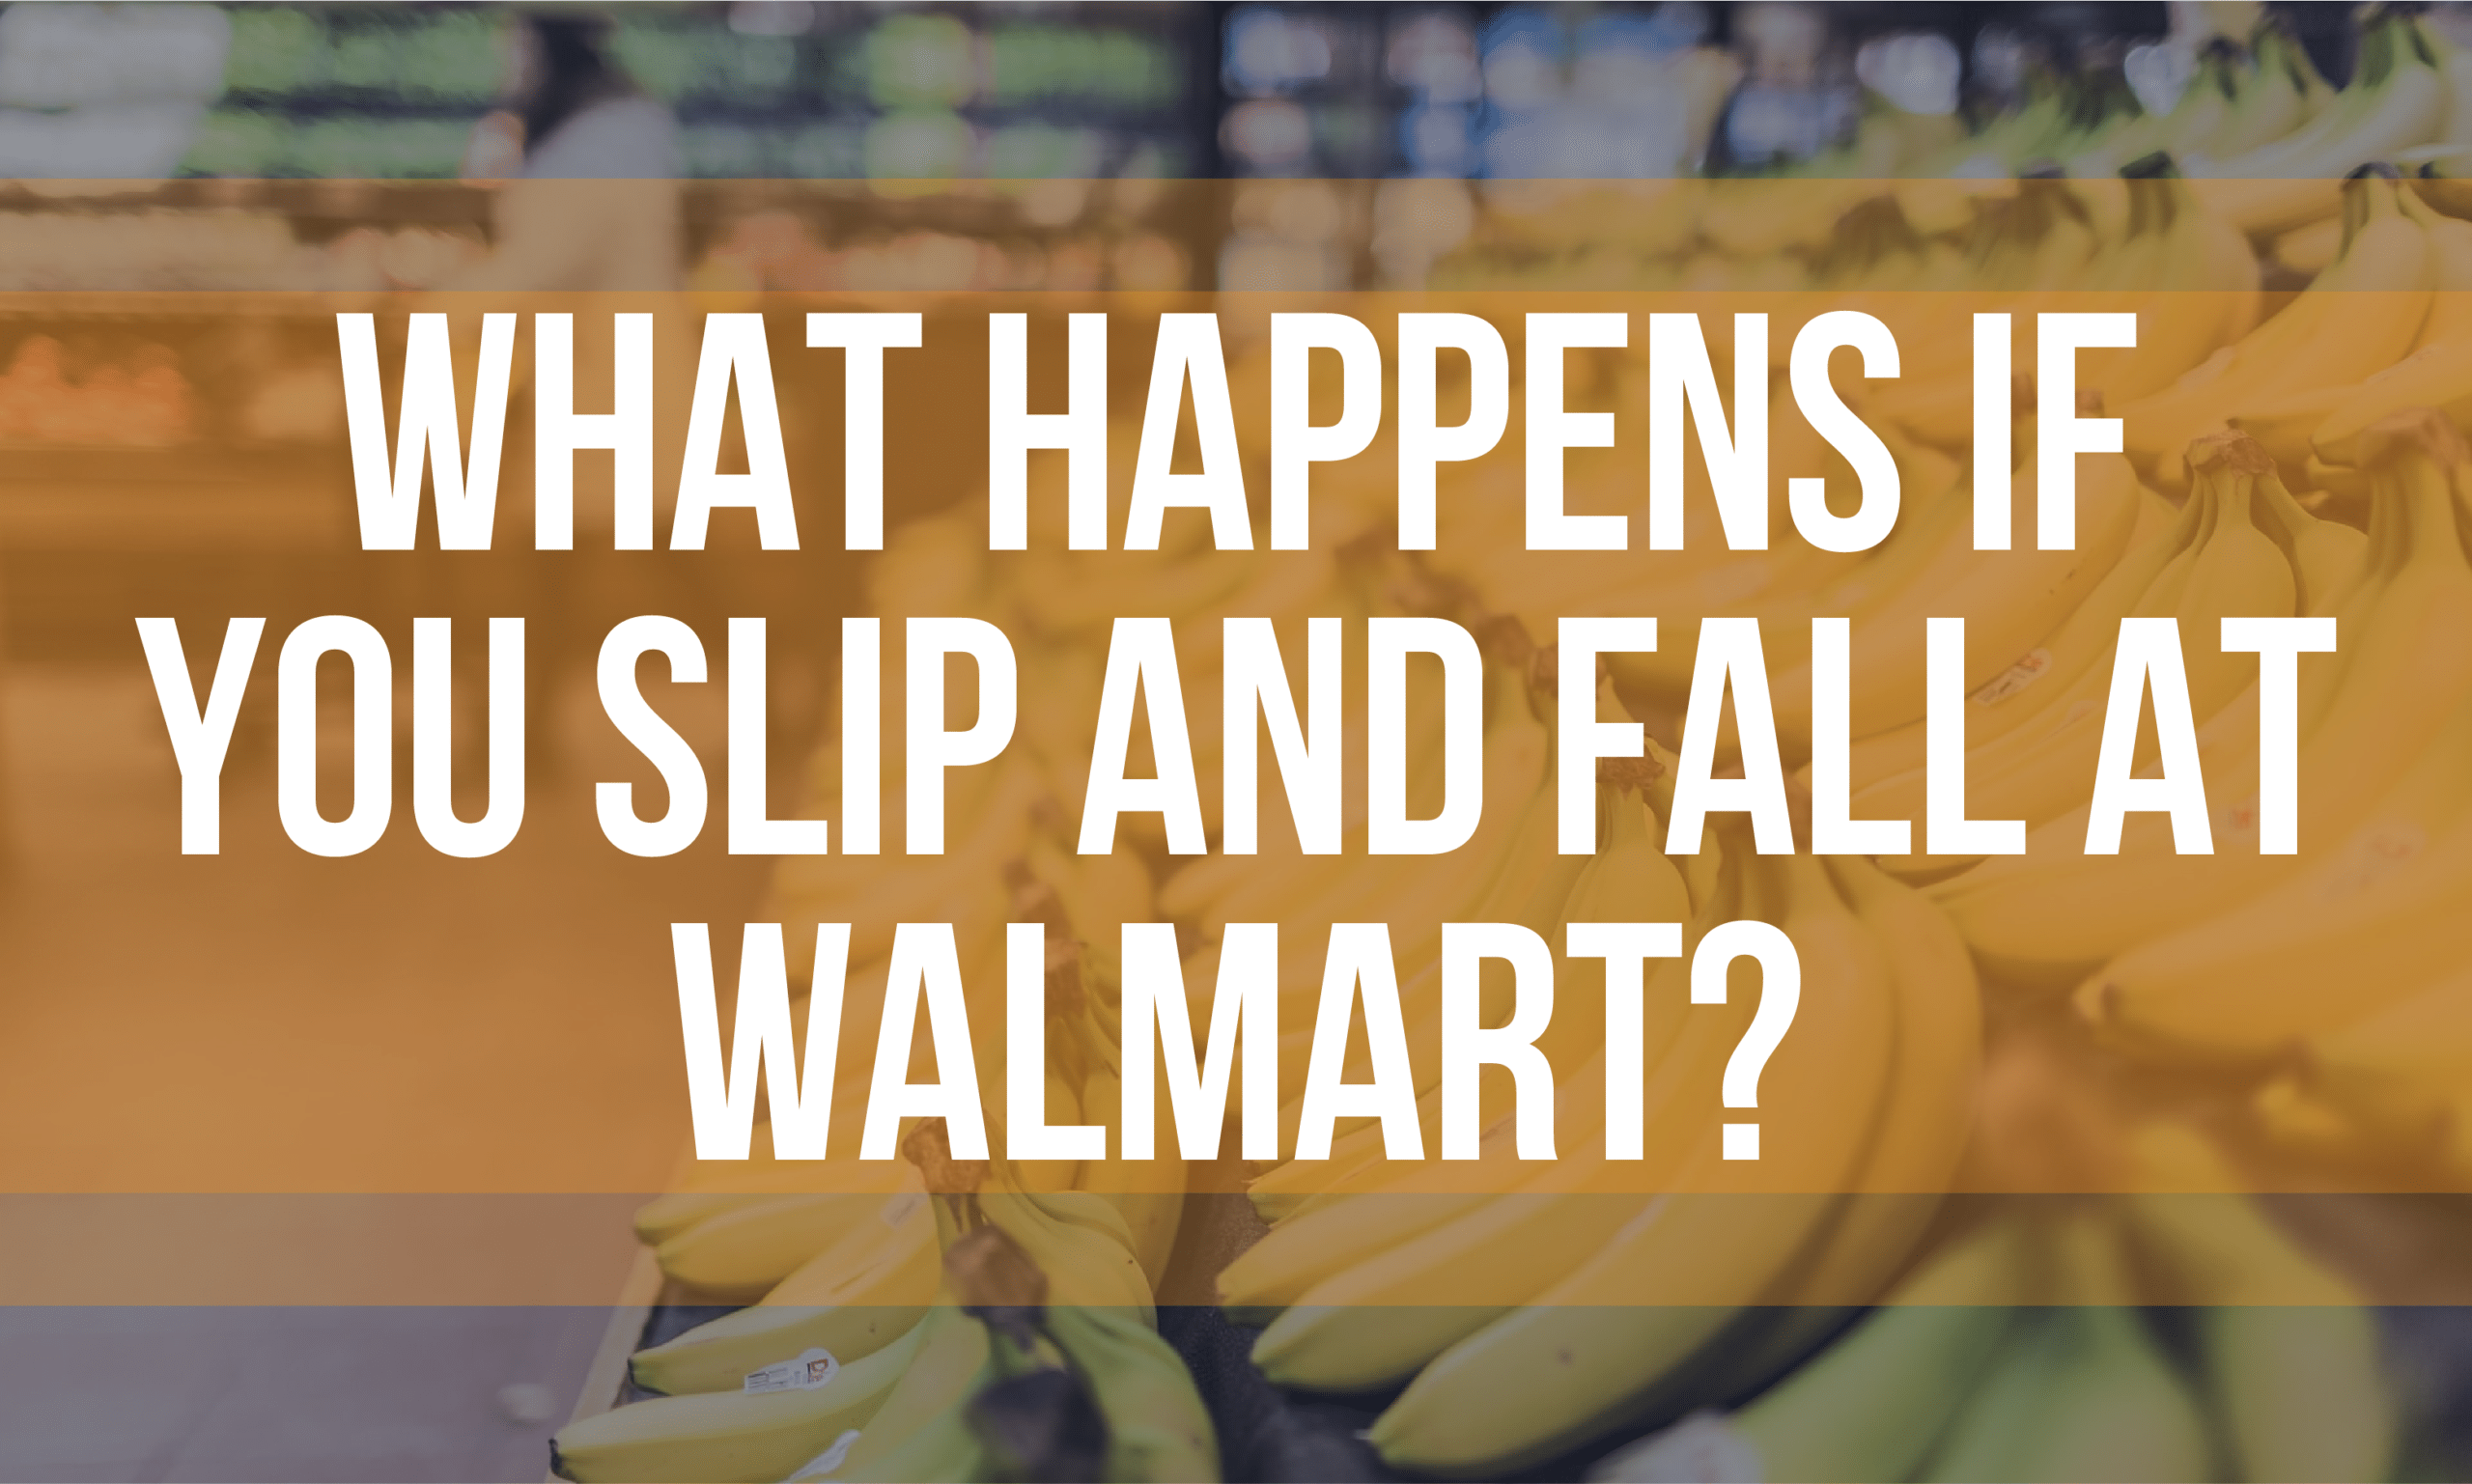 """""""What Happens If You Slip and Fall at Walmart?"""" overlaid on an image of bananas in a Walmart"""